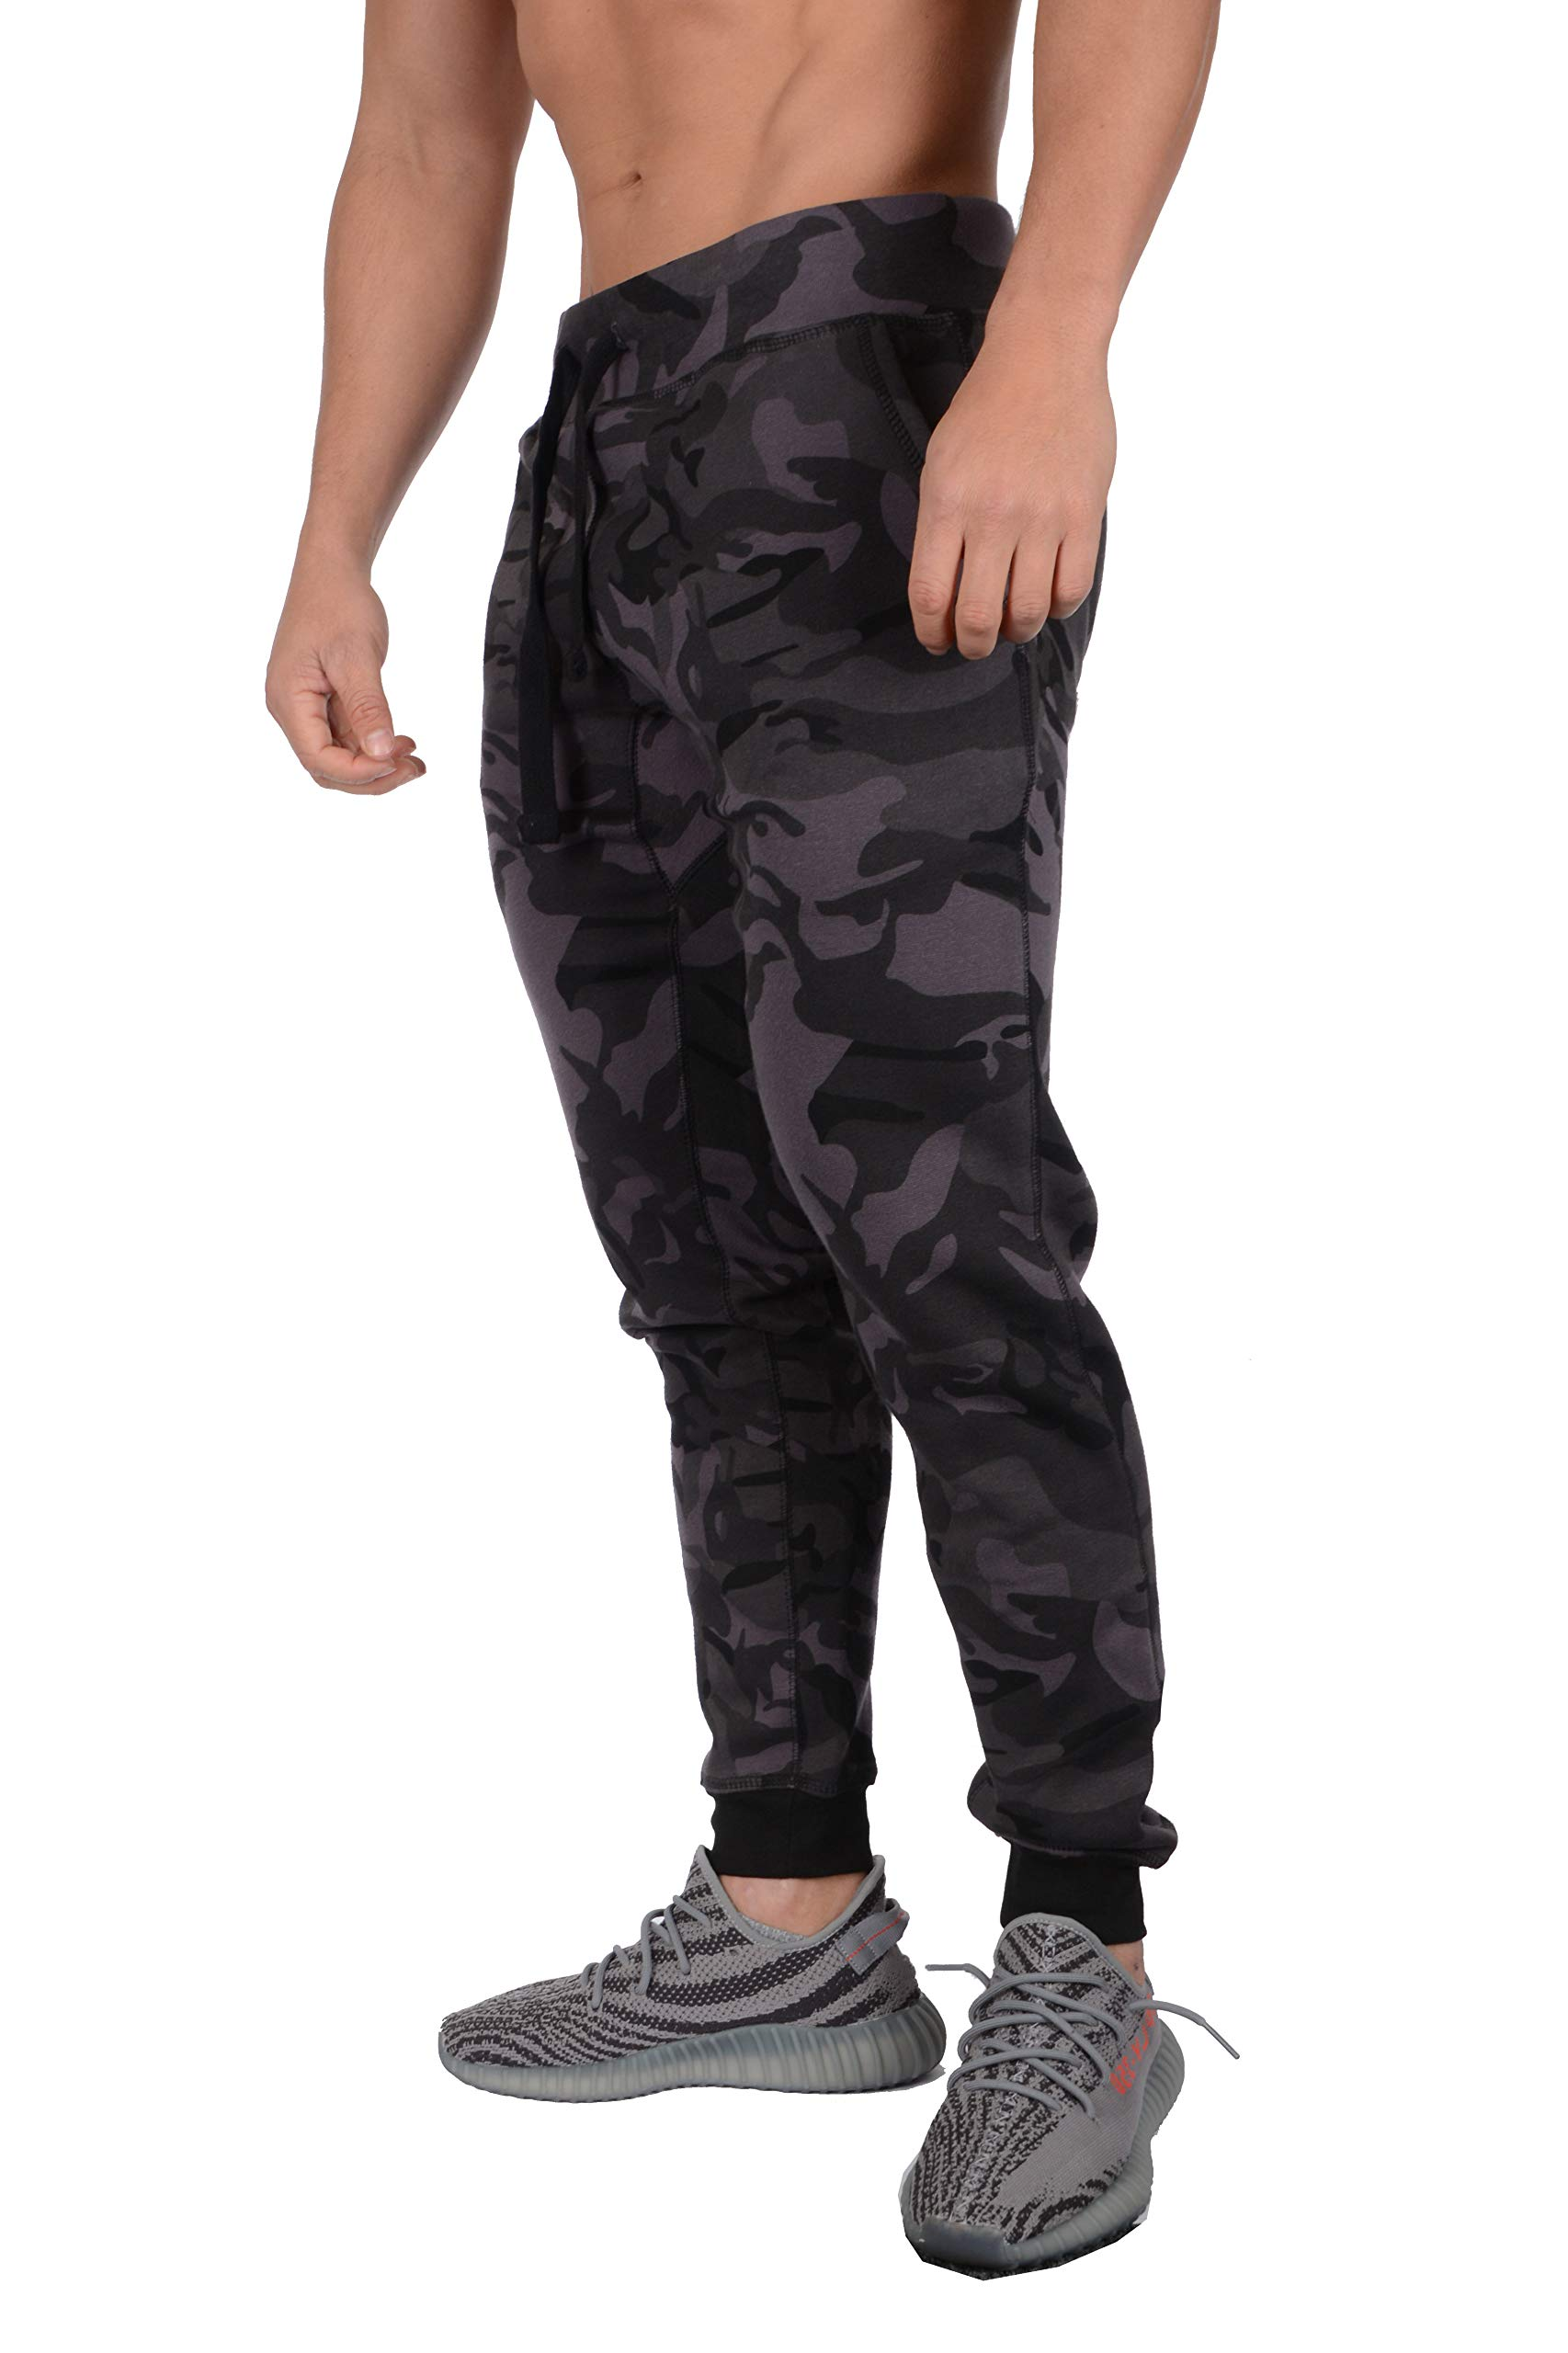 YoungLA Mens Slim Fit Joggers Fitness Activewear Sports Fleece Sweatpants for Gym Training (Camo Black, Medium) by YoungLA (Image #1)